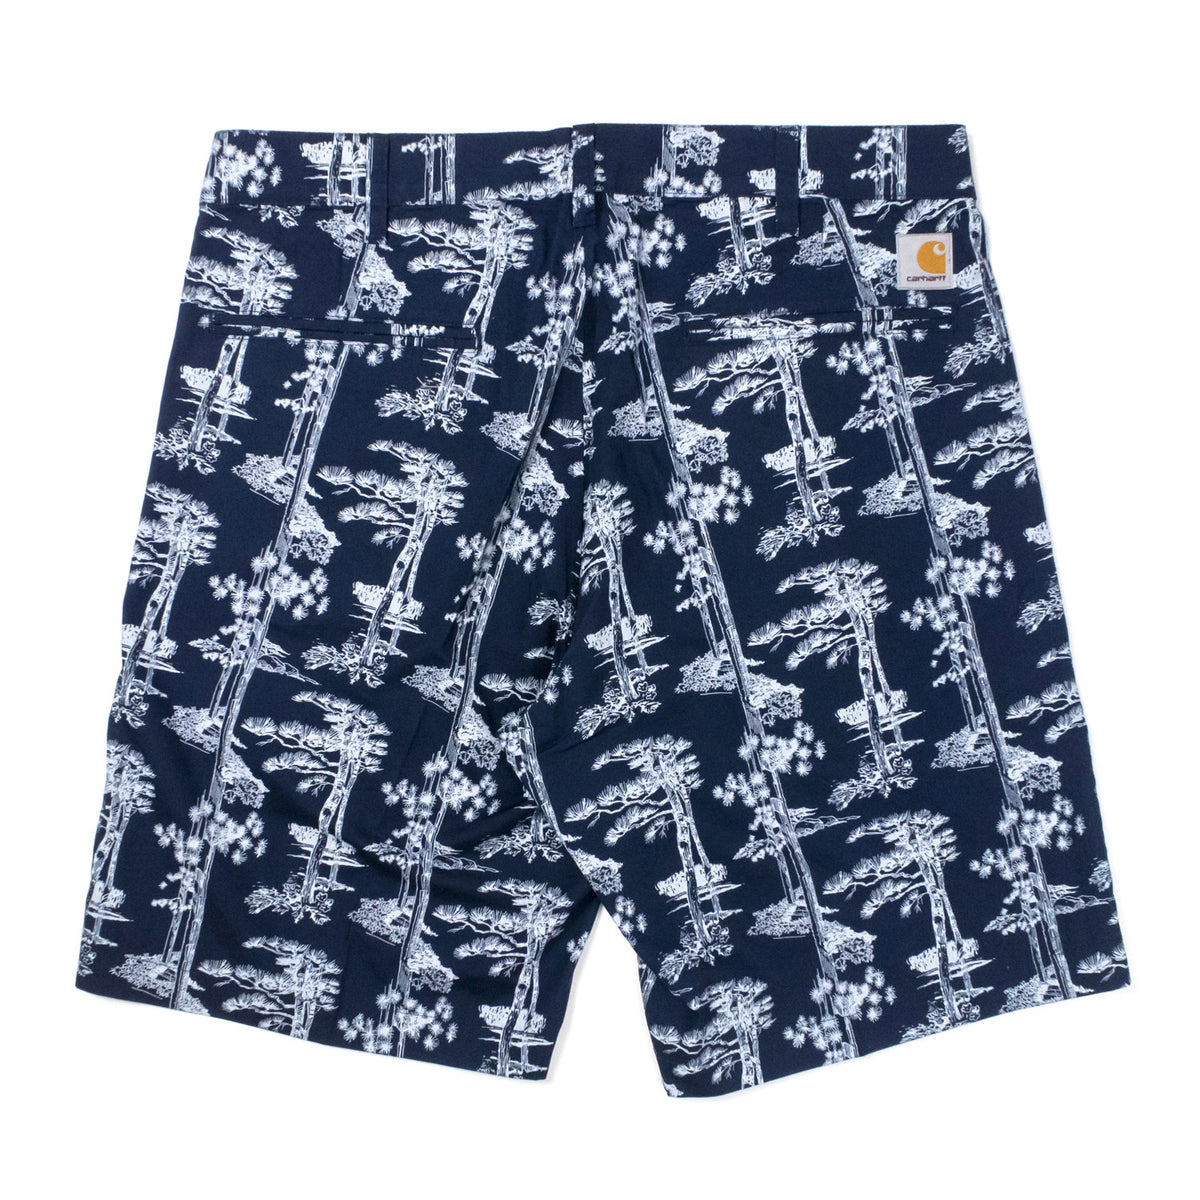 Carhartt - Pine Short - Blue/White